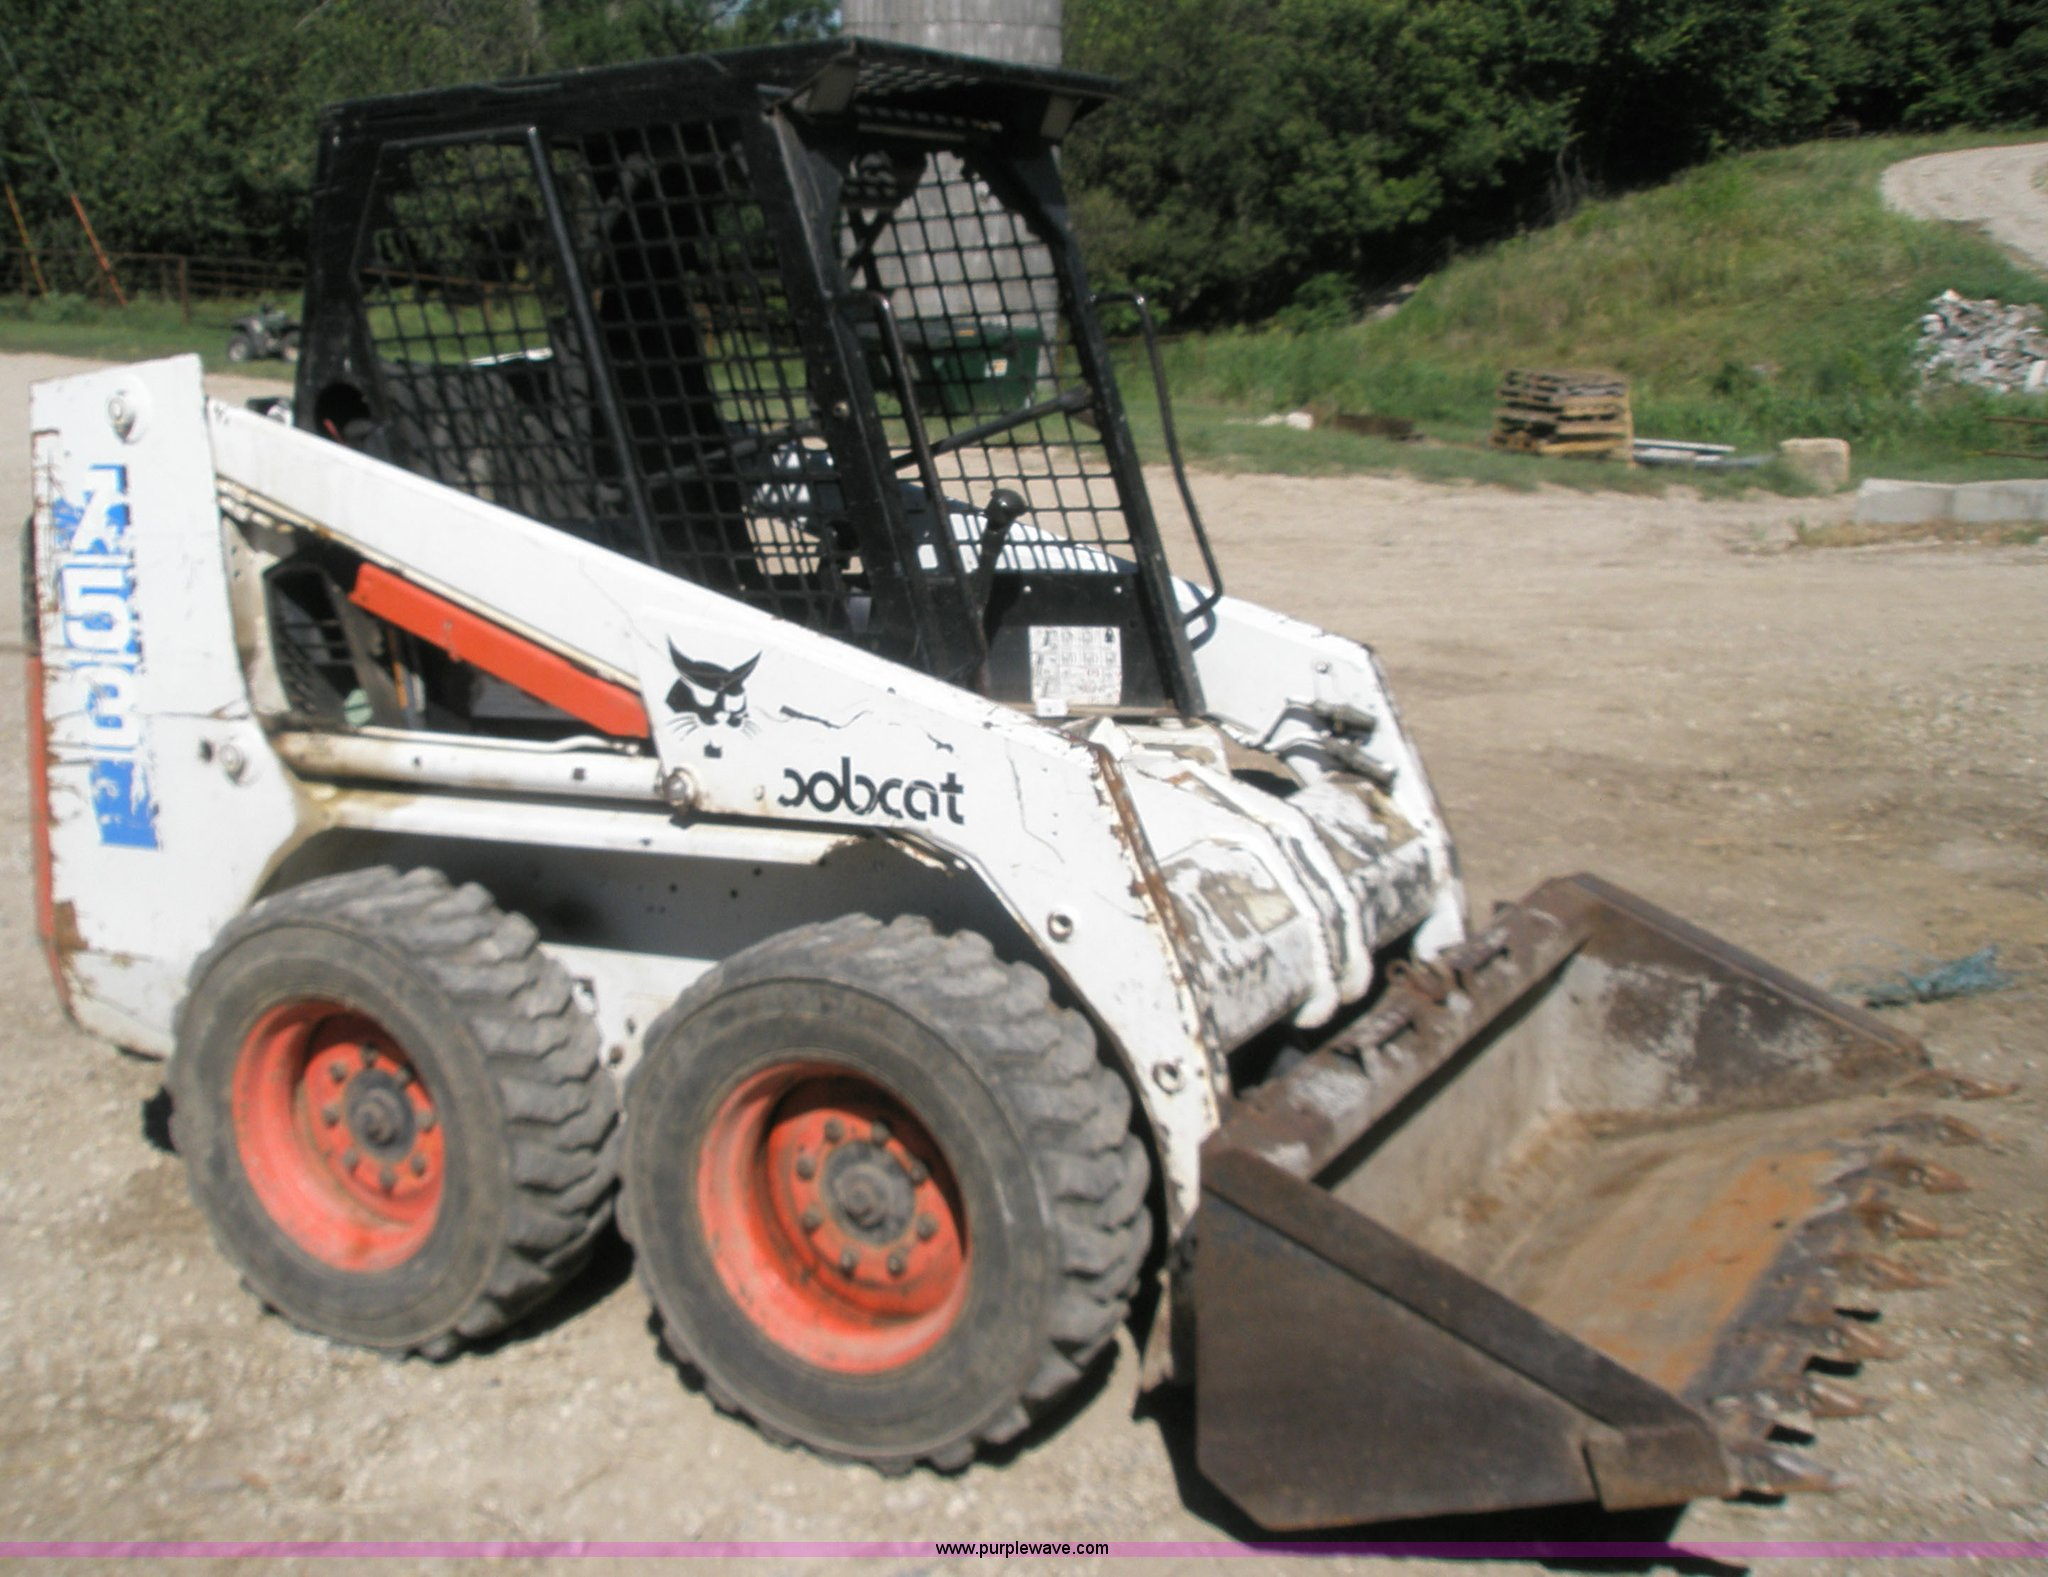 1993 Bobcat 753 Skid Steer Item 1001 Sold August 31 Con